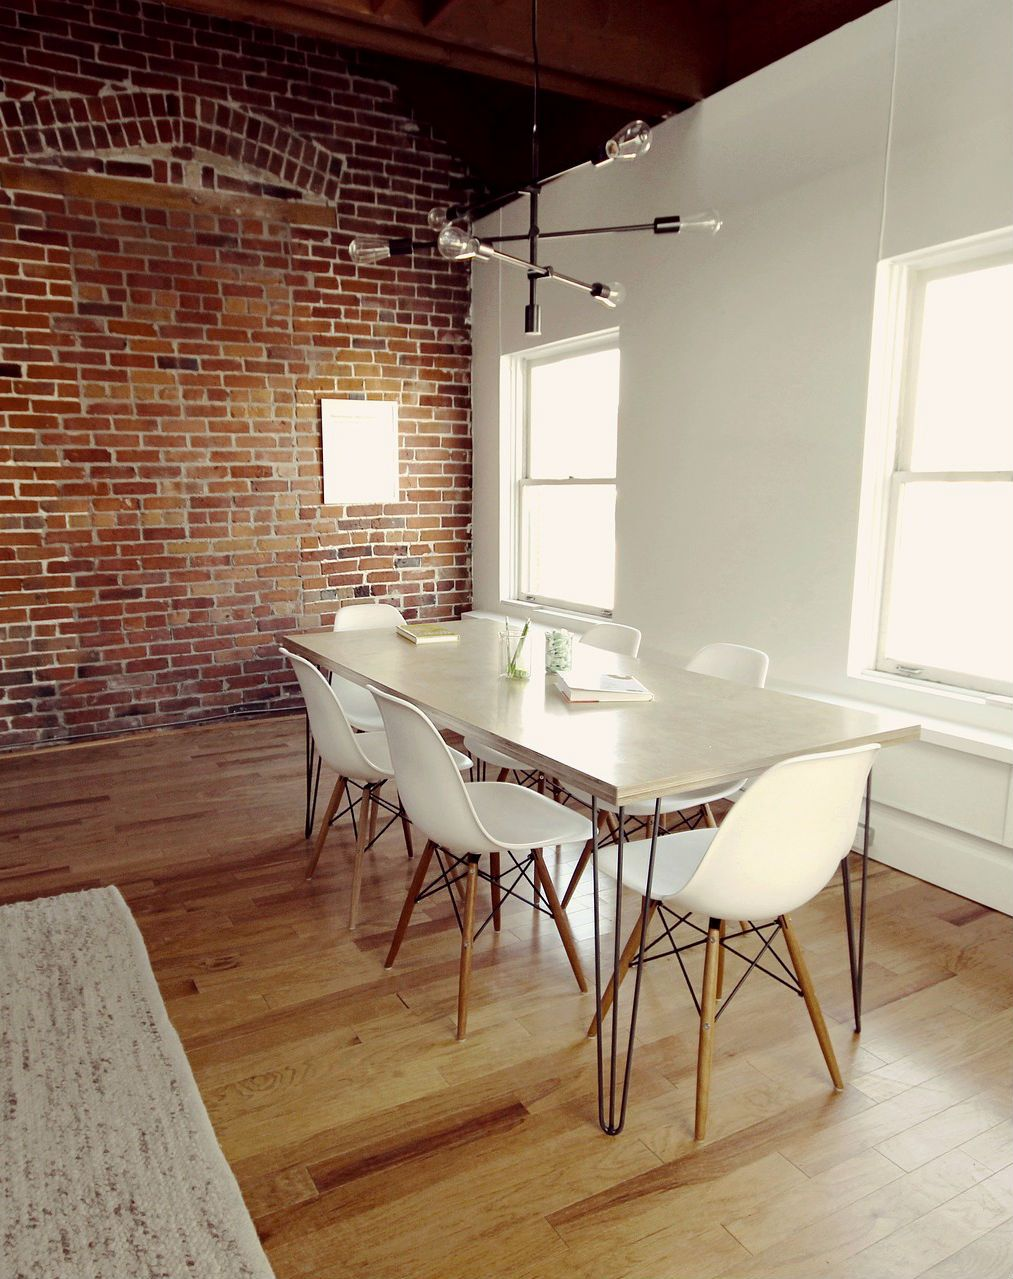 Bright Dining Room In White With A Red Brick Accent Wall Mortonstones Rustic Home Decor Interi Bright Dining Rooms Rustic Dining Room Brick Accent Walls